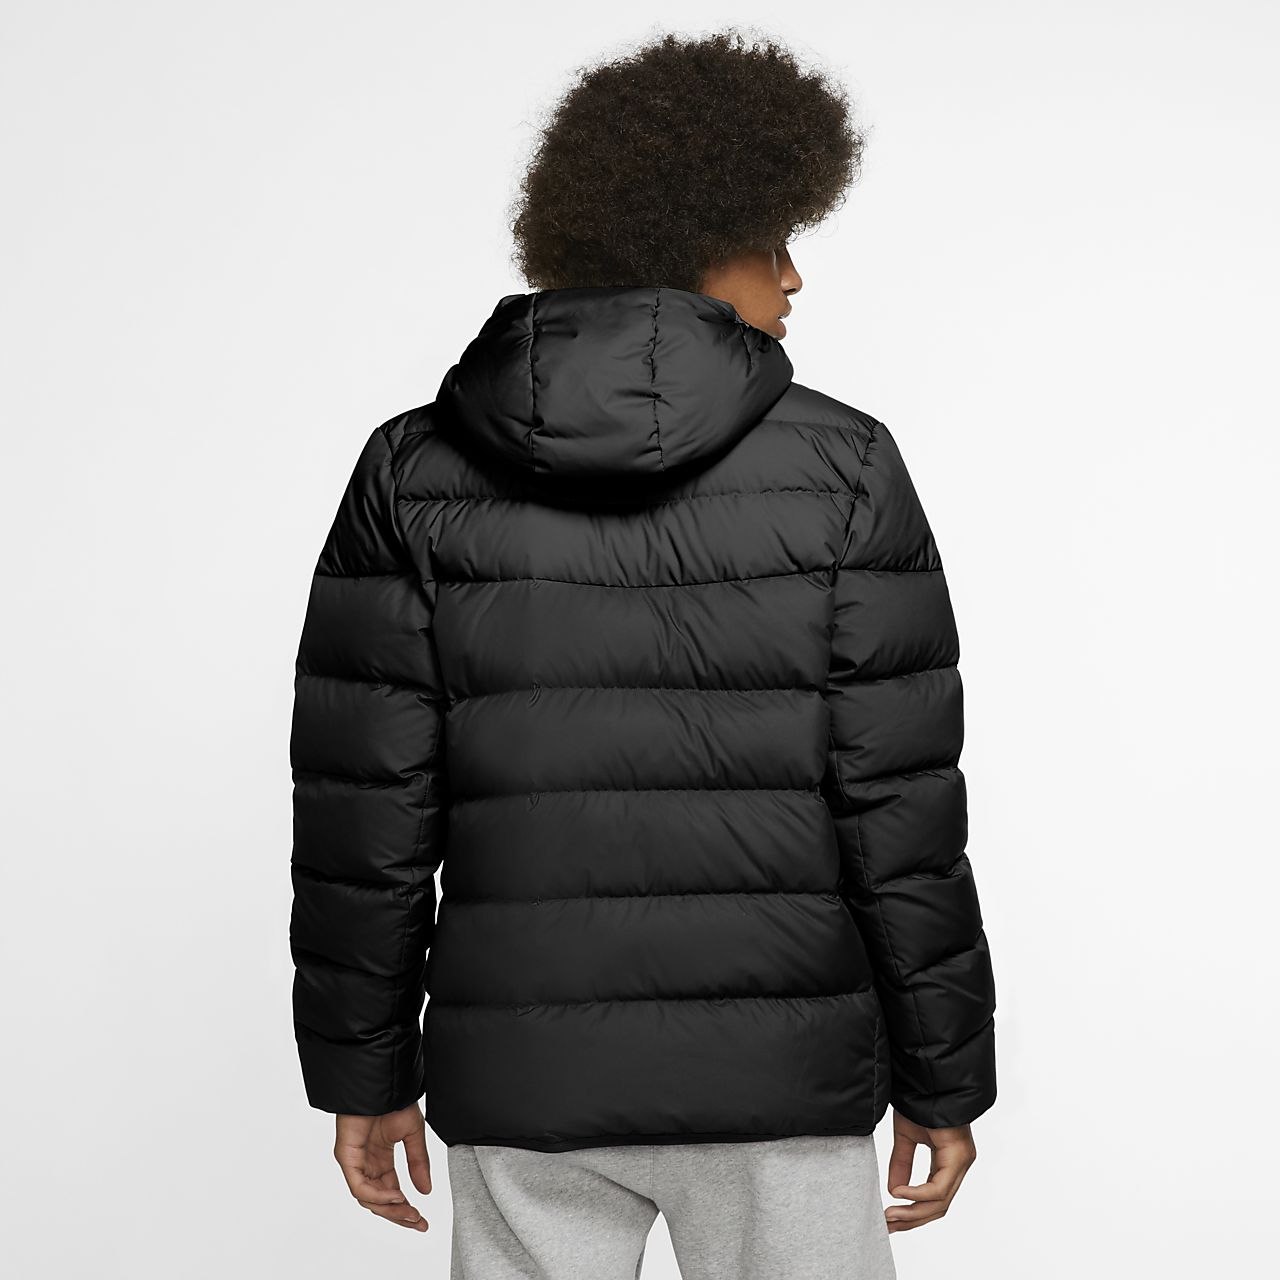 dbe36e8245 Nike Sportswear Windrunner Down-Fill Men s Hooded Jacket. Nike.com NL